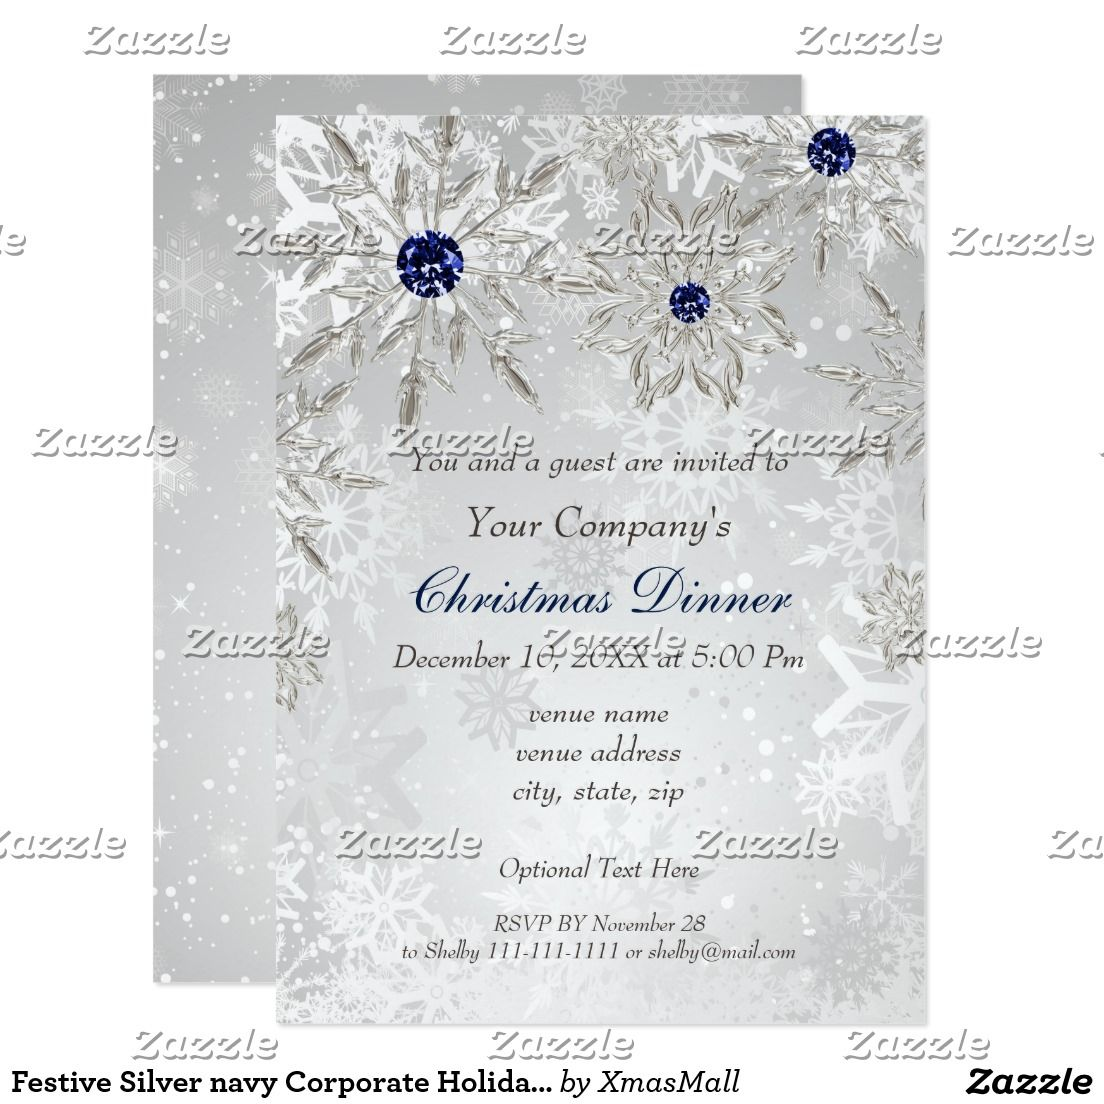 Festive Silver navy Corporate Holiday party Invite | Corporate ...